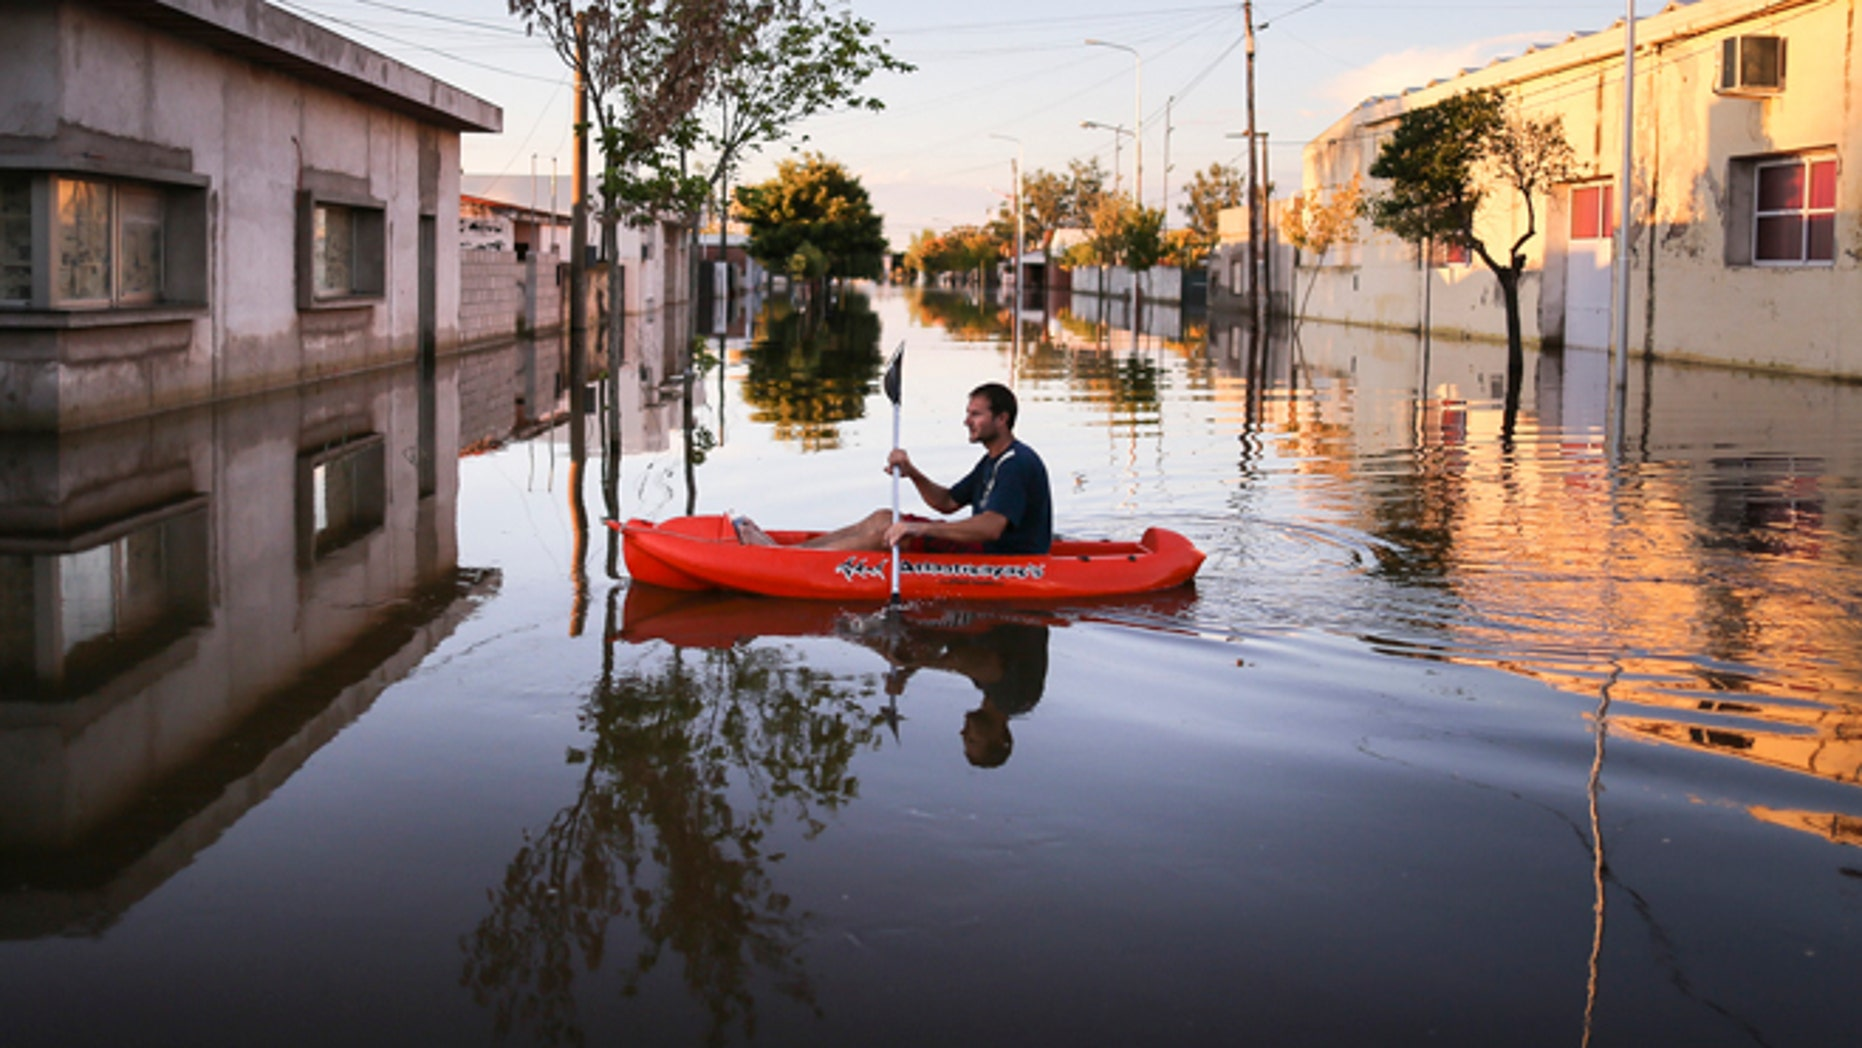 A man rows a dinghy through flood waters in Idiazabal, Argentina, Thursday, March 5, 2015. Flooding throughout four Argentine provinces have forced thousands of people to flee their homes. In the small town of Idiazabal, in the Cordoba province, residents continue to wade through fully submerged streets that have been under water for over one week. While rains stopped on Thursday and are not expected to return over the coming days, floodwaters have not subsided. (AP Photo/Nico Aguilera)